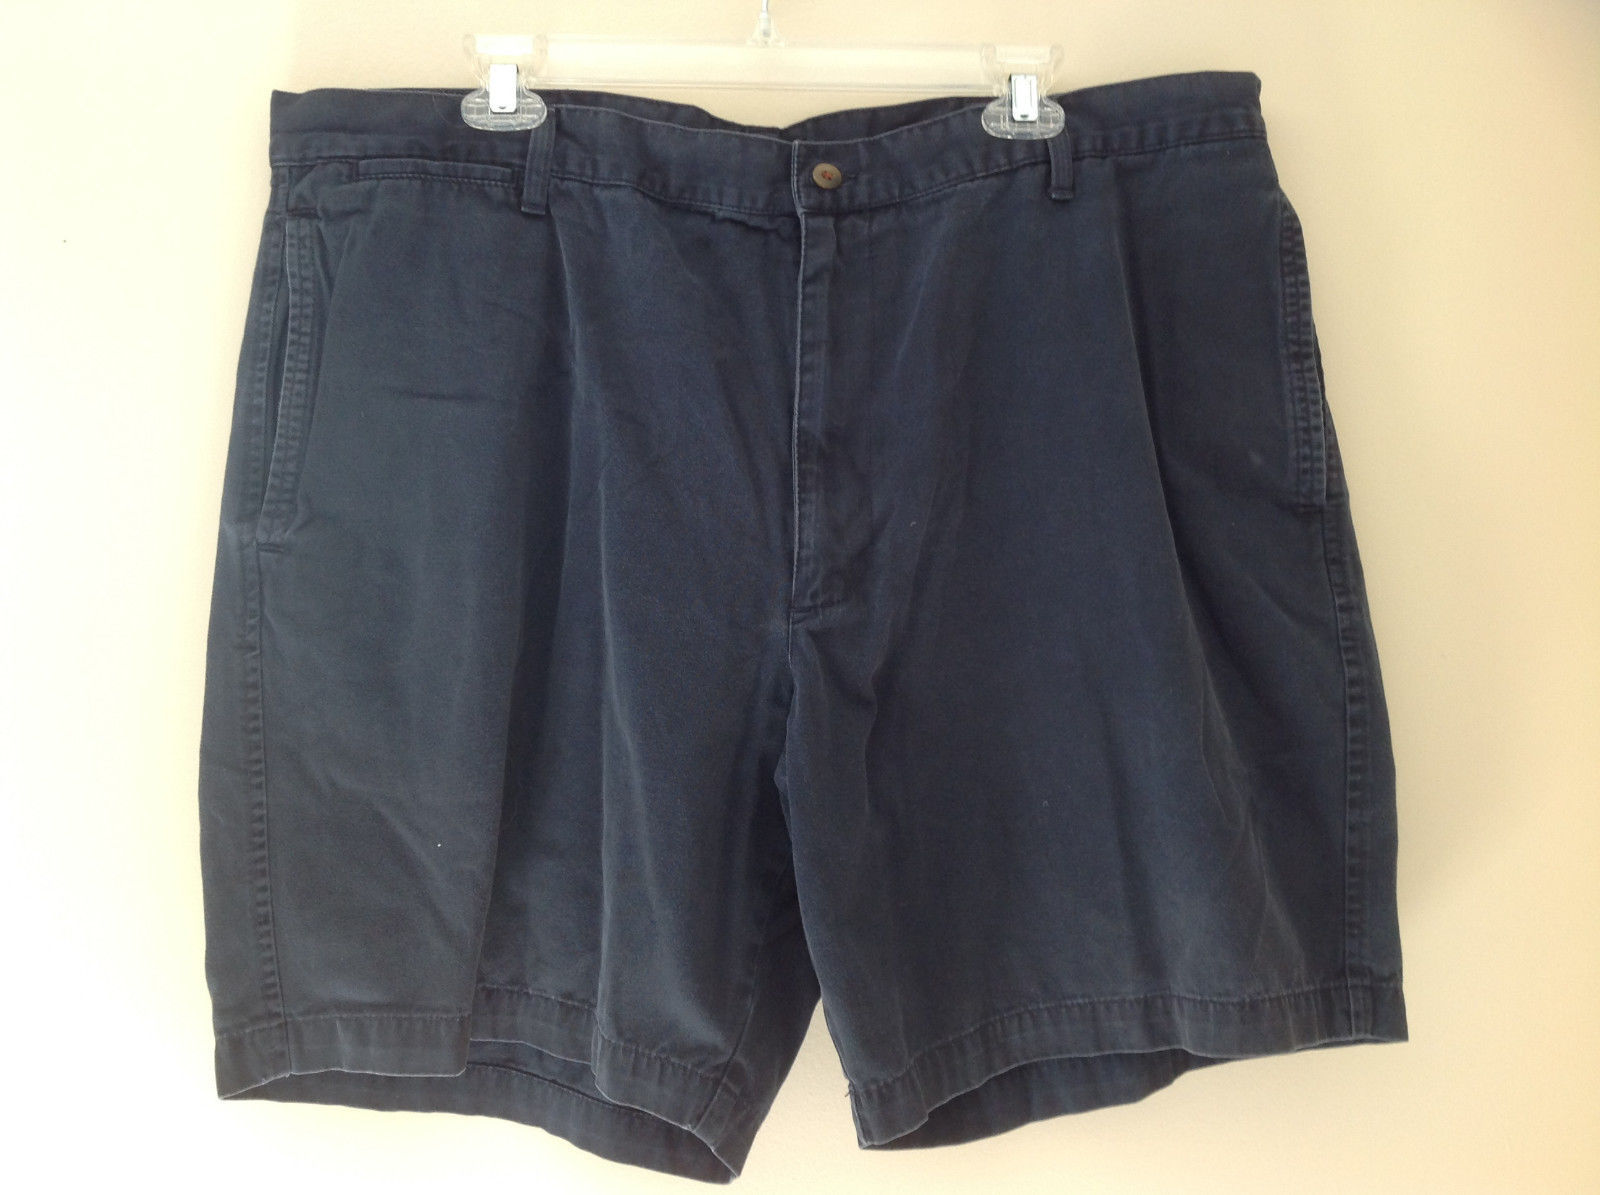 Navy Khaki Shorts by Dockers Four Pockets Button and Zipper Closure Size 42